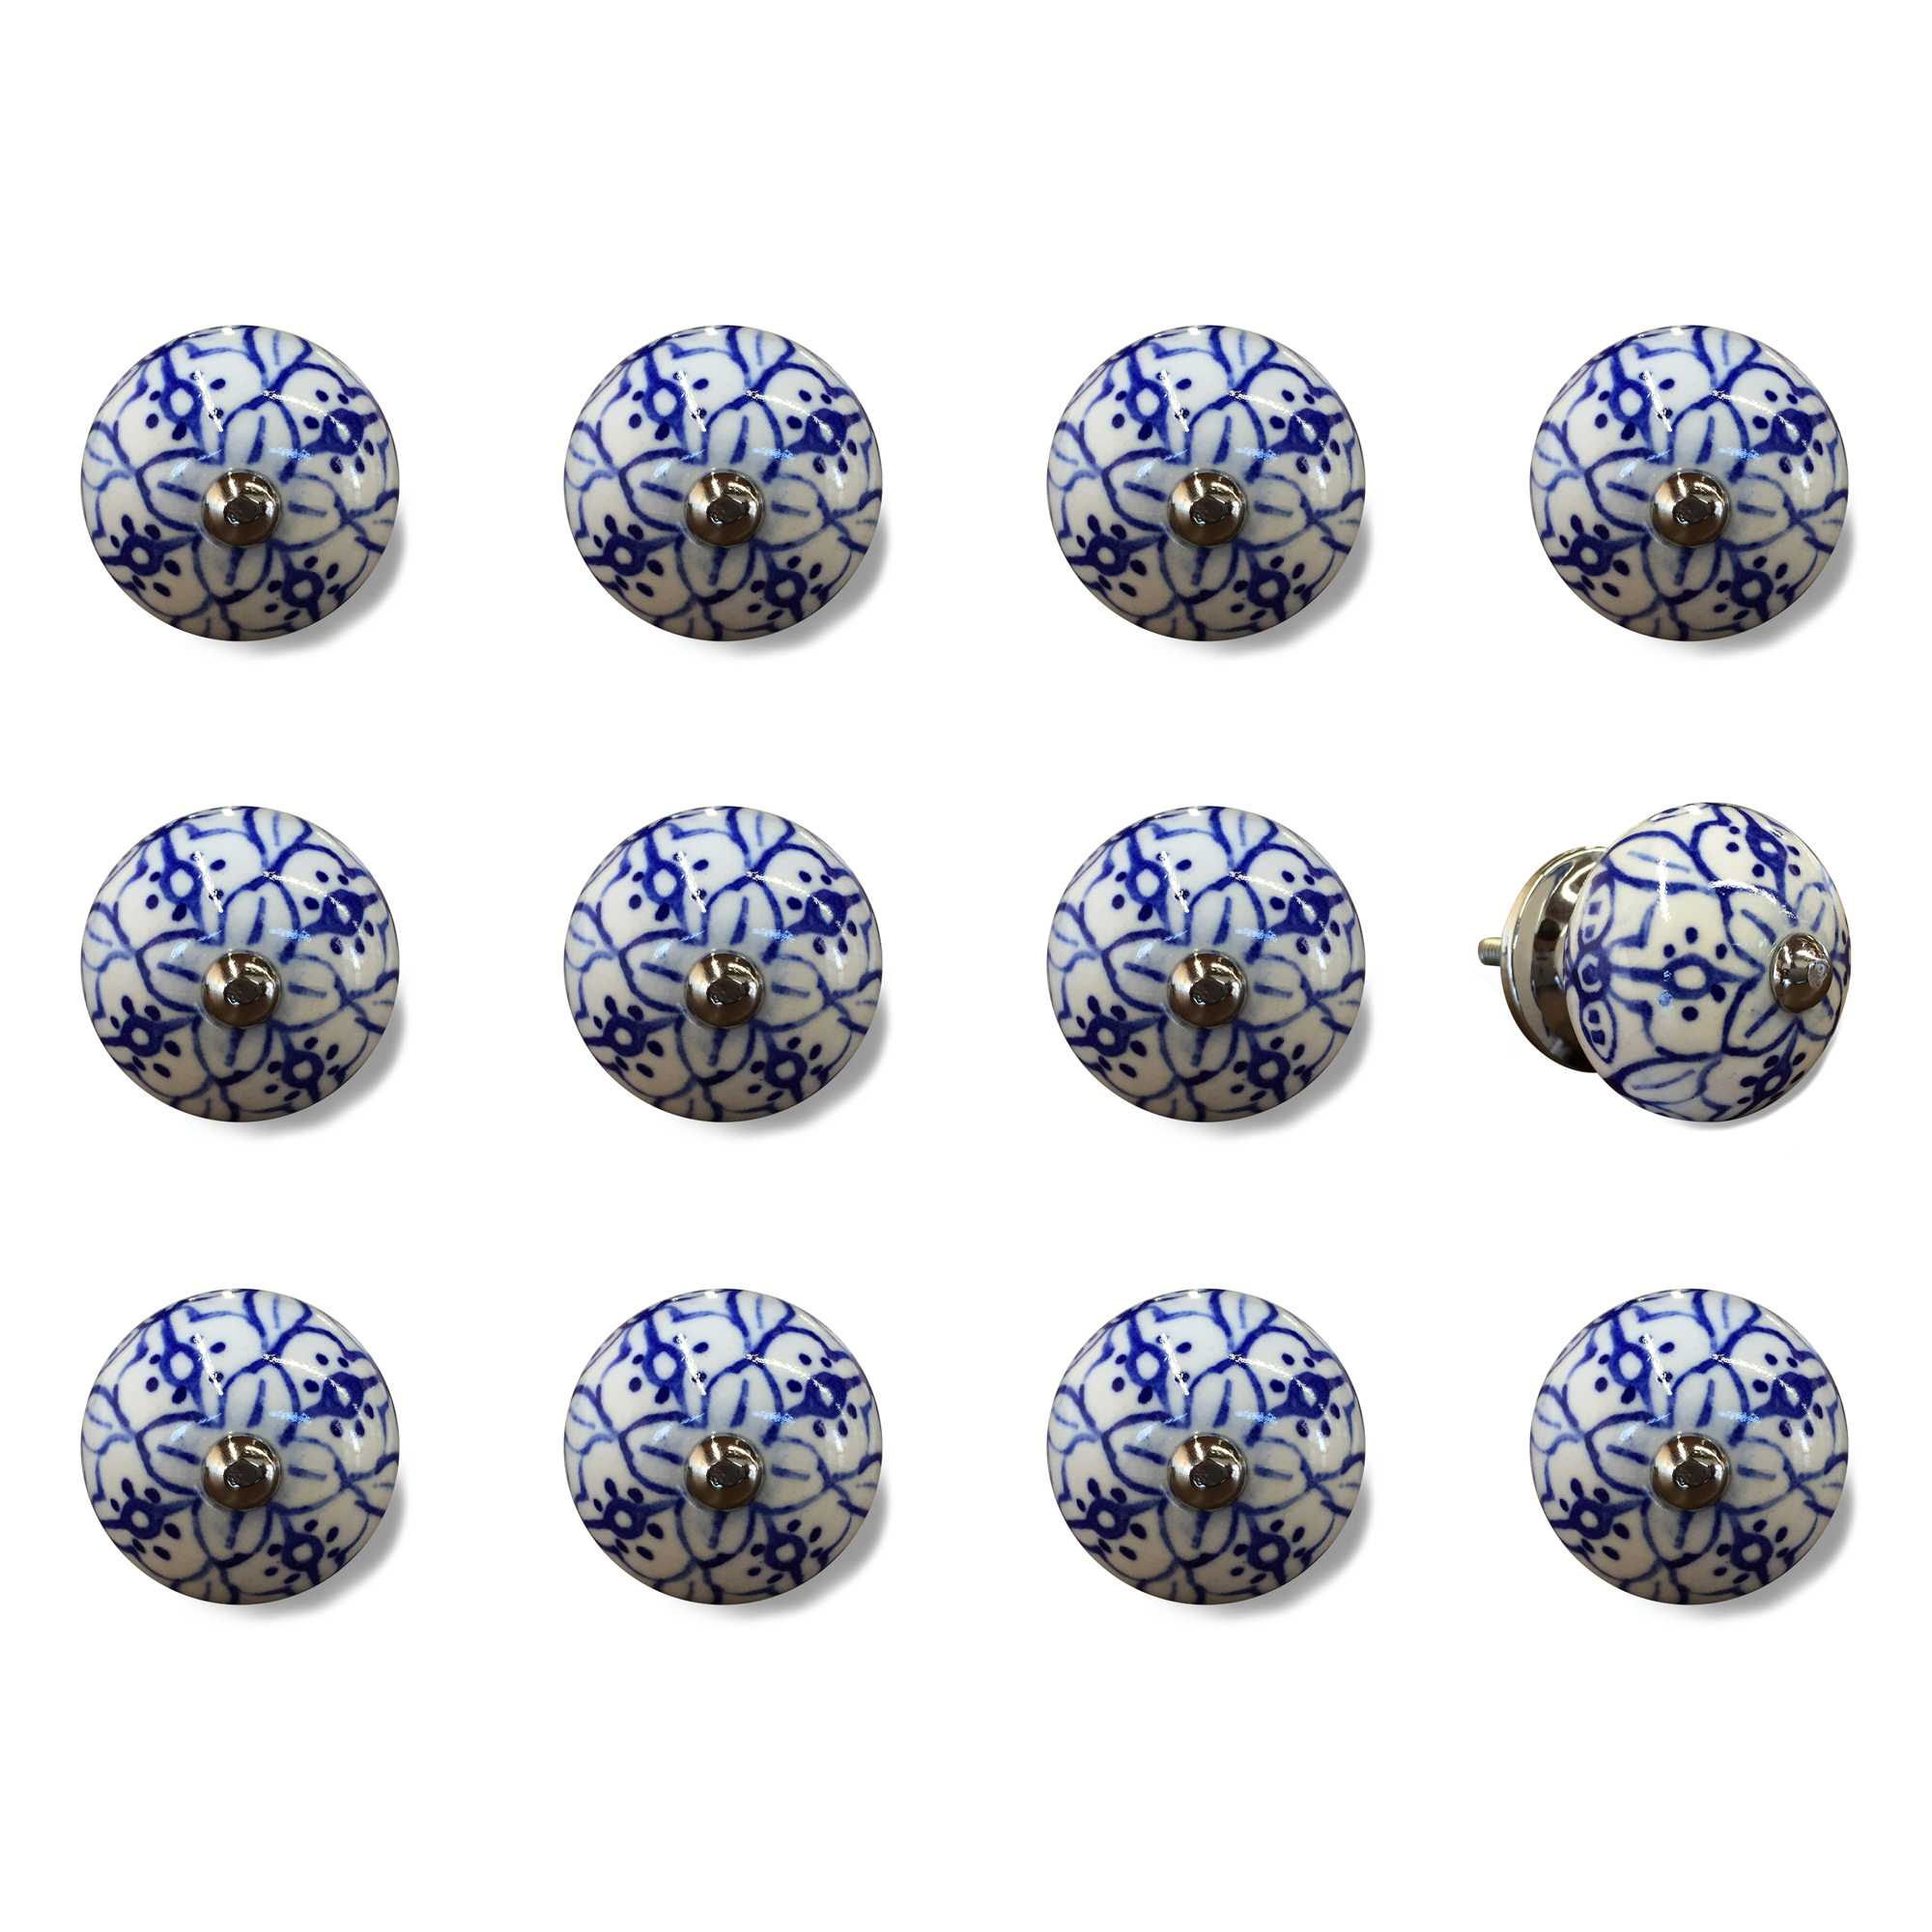 white. blue and silver knobs